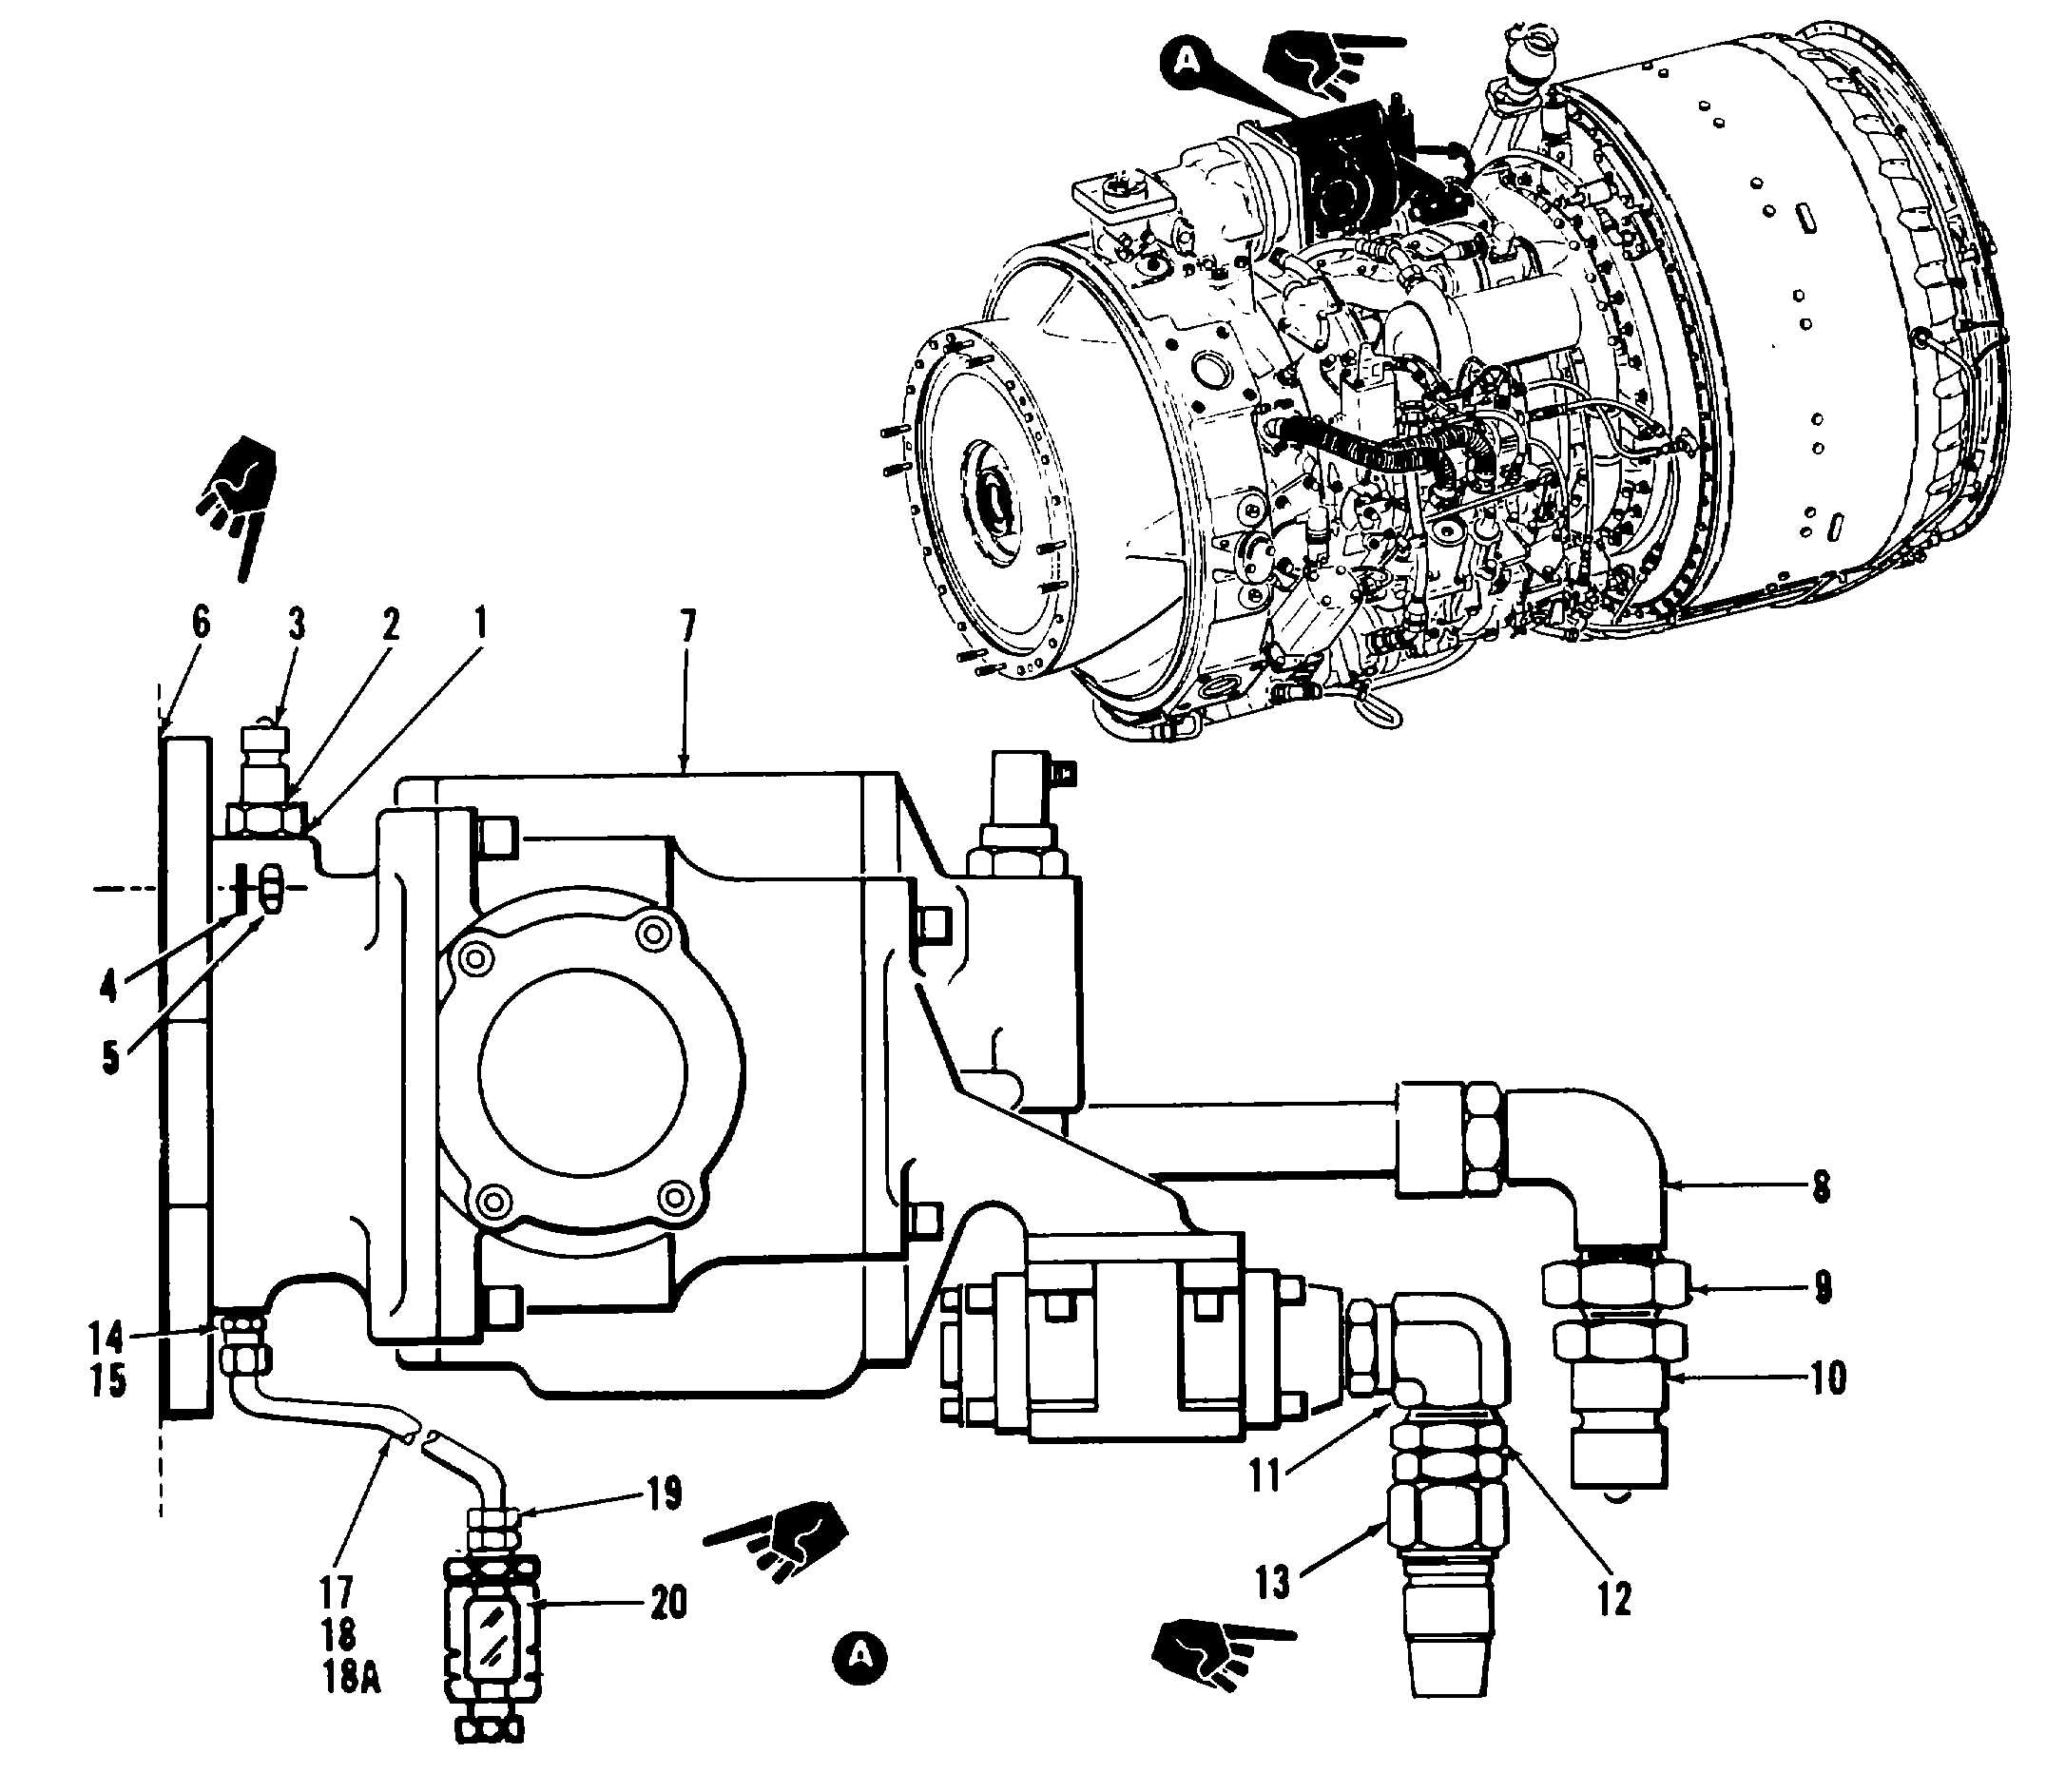 T55 Turboshaft Engine